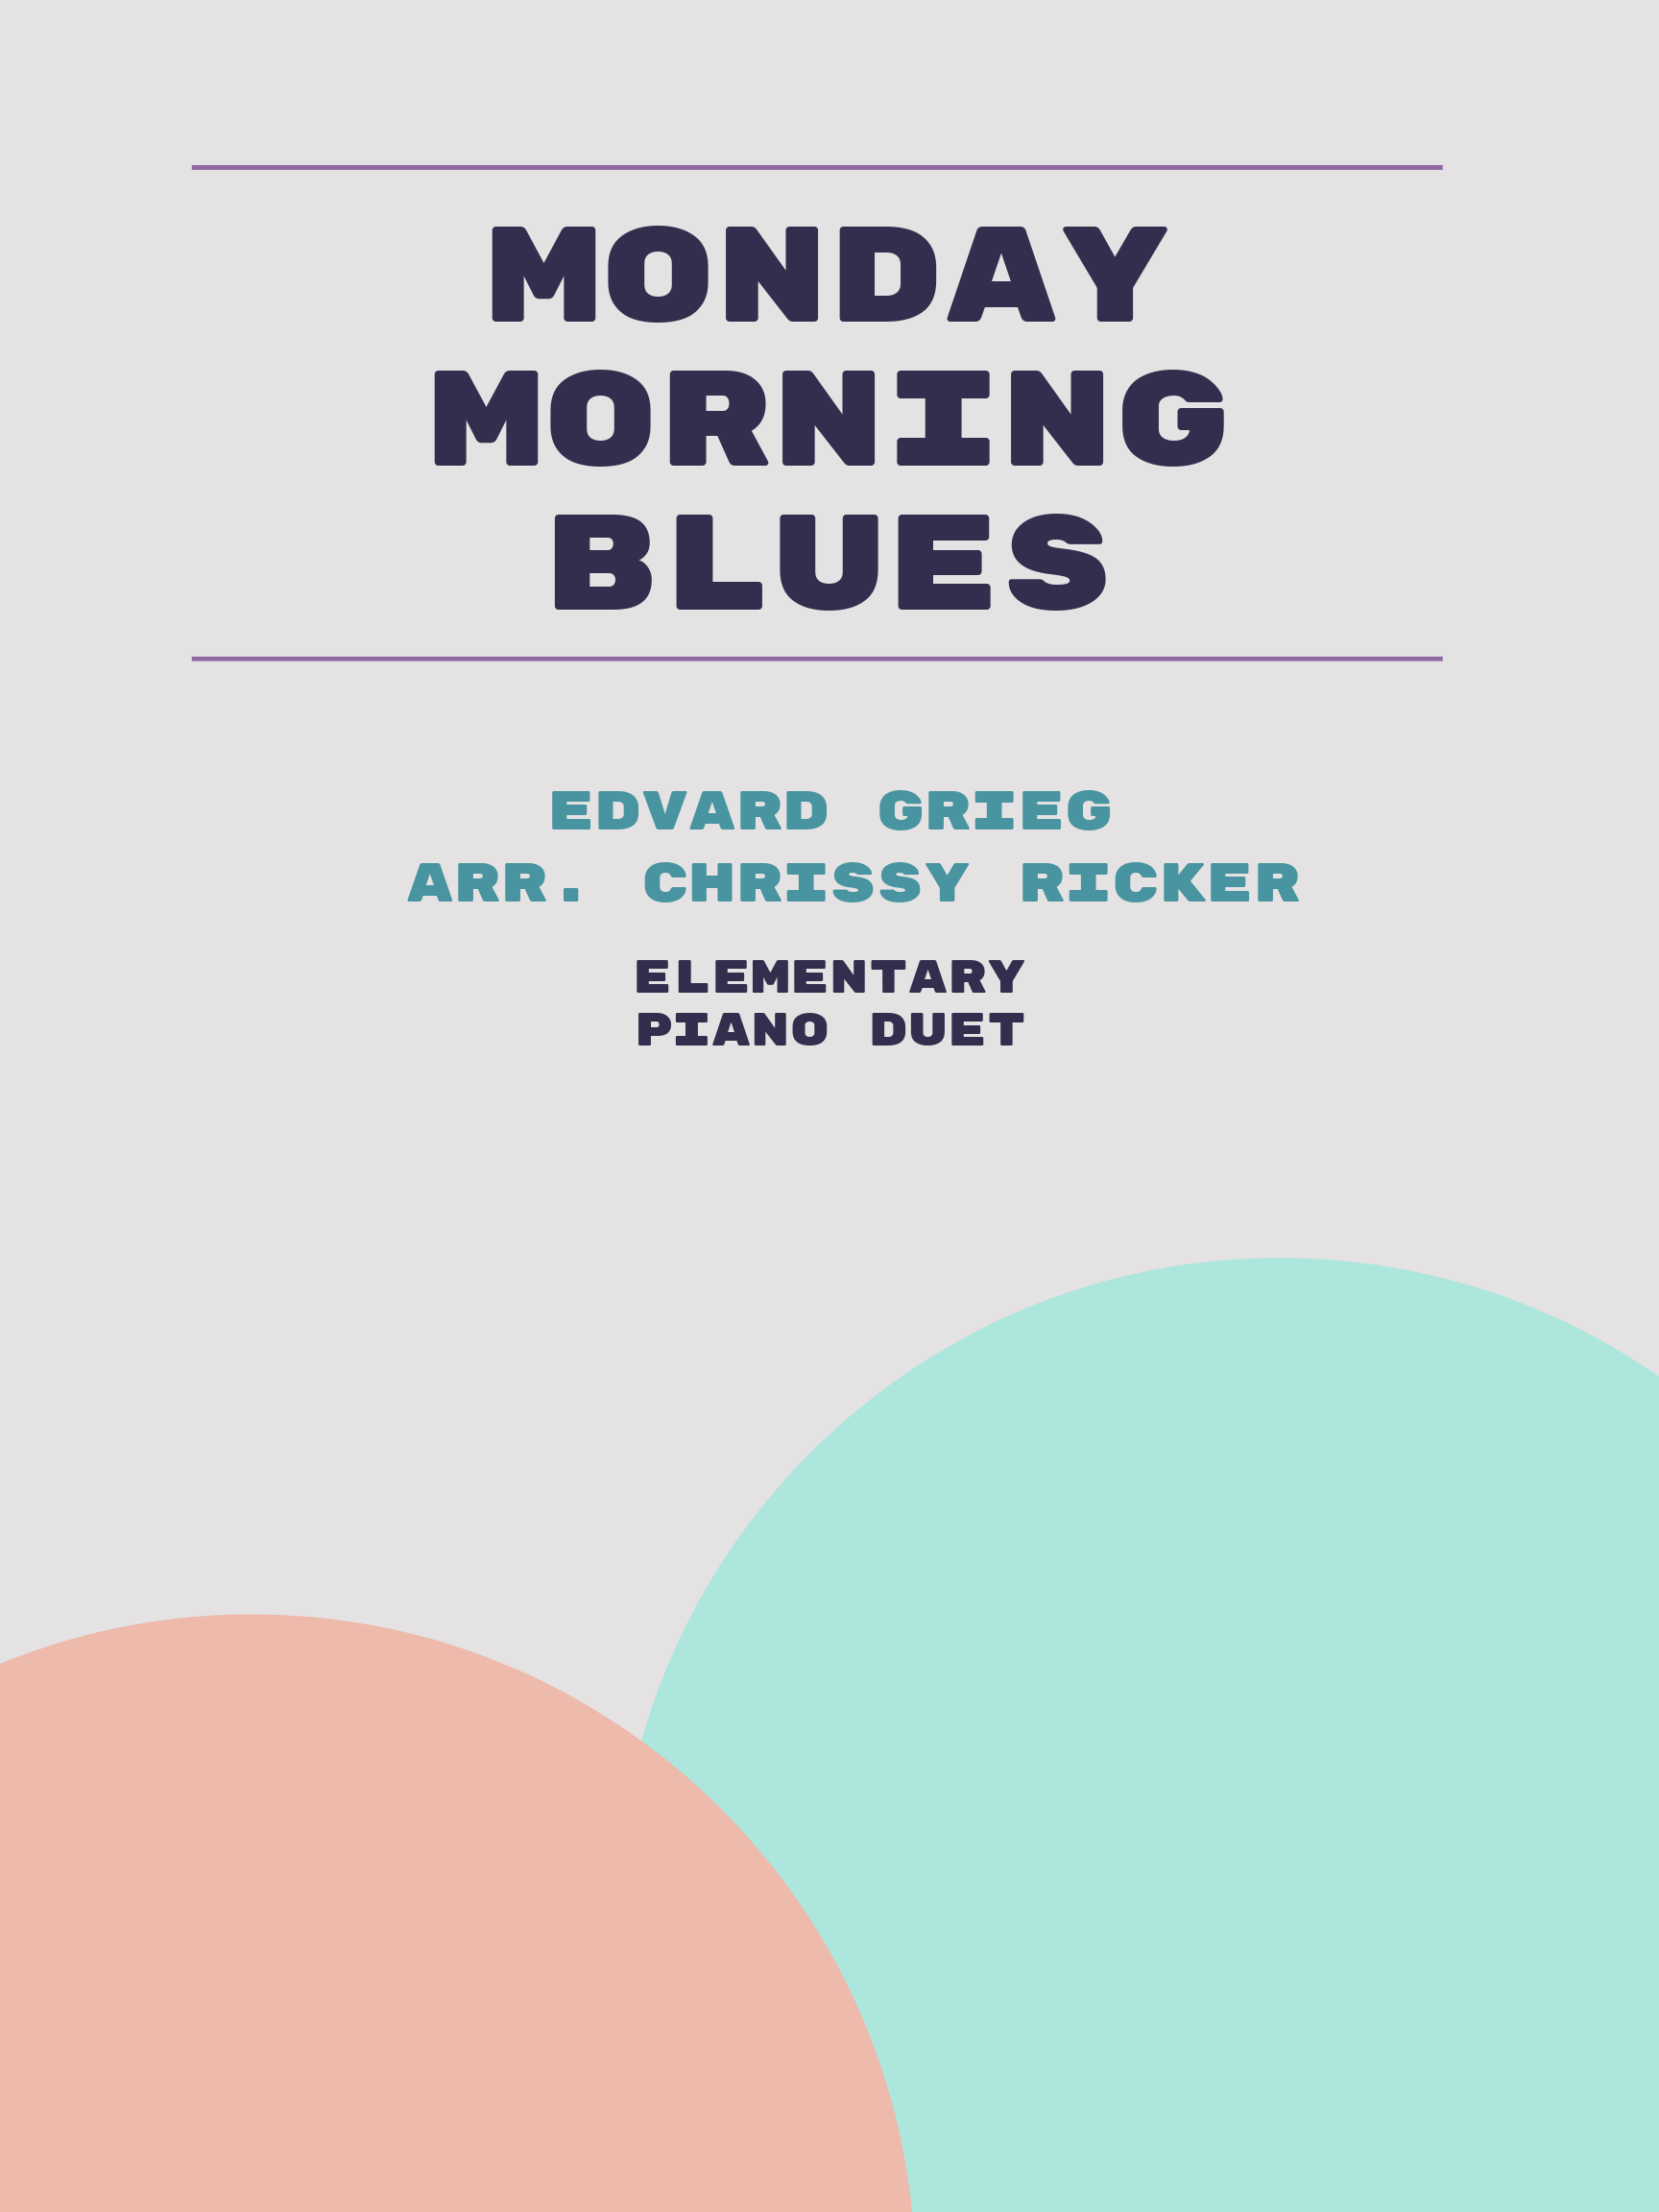 Monday Morning Blues by Edvard Grieg